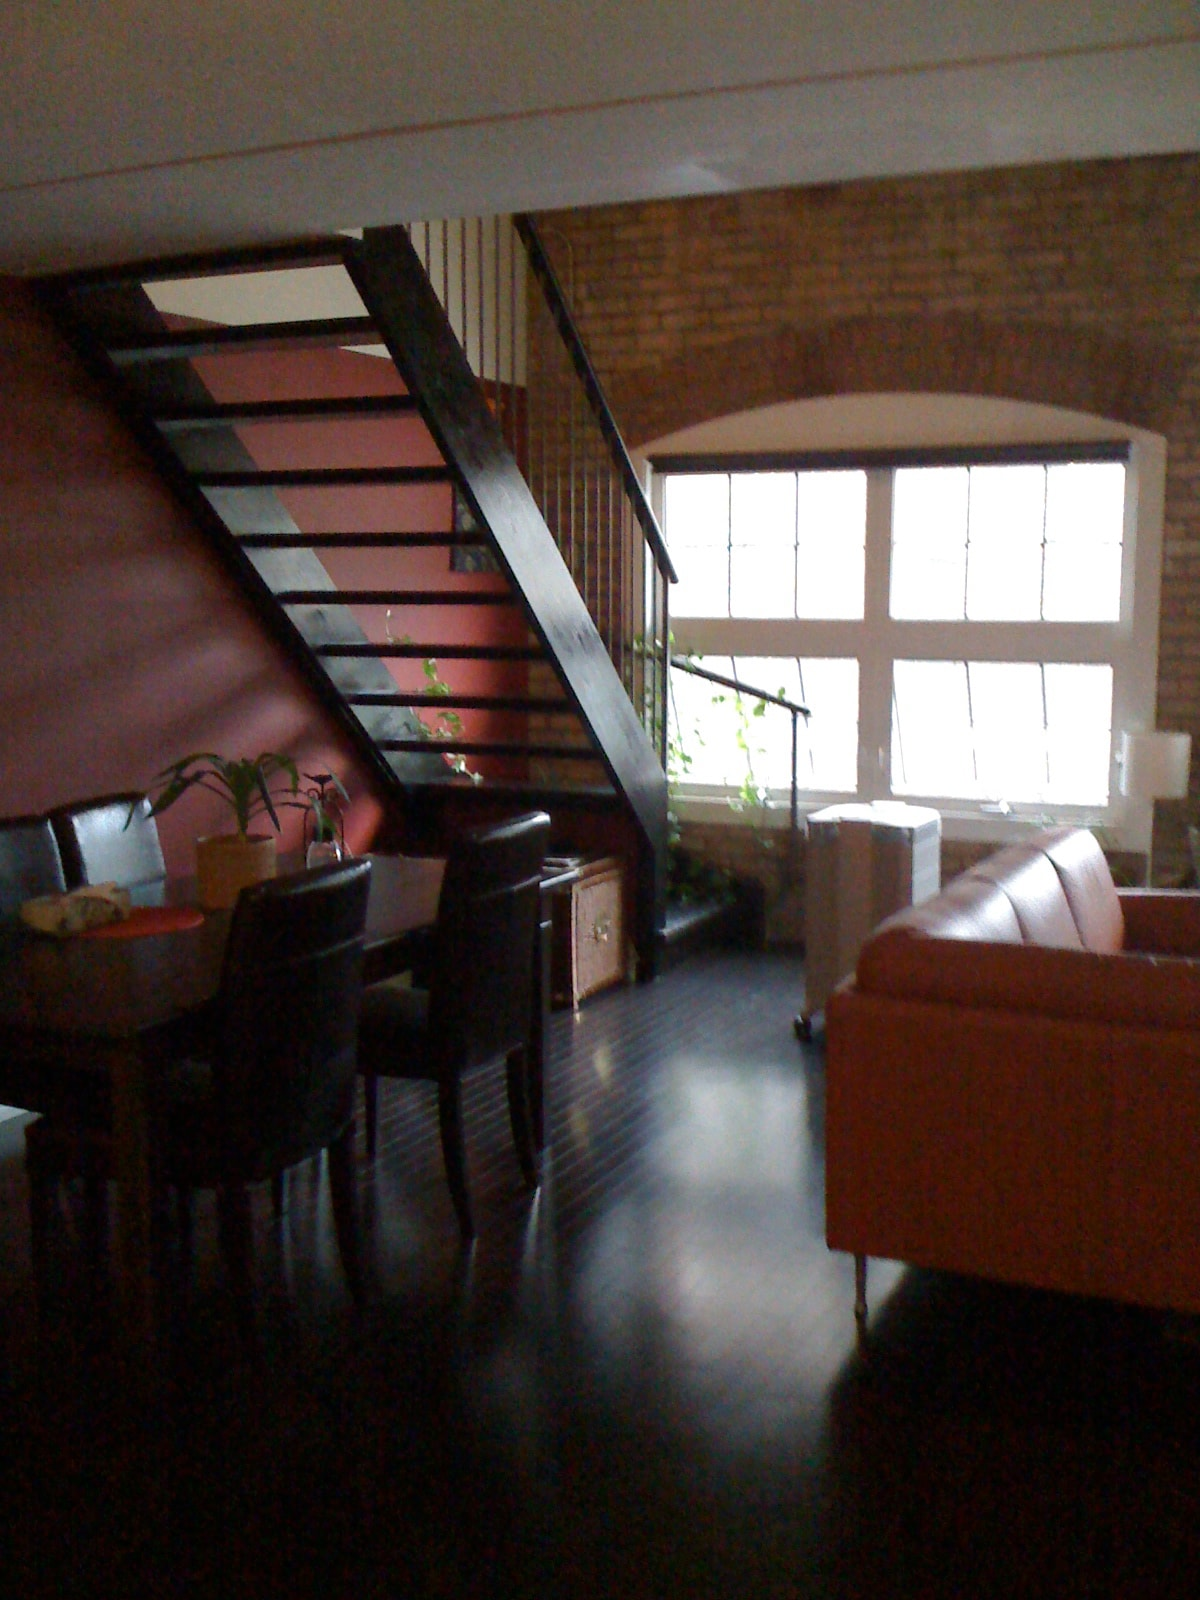 Clean private room in heritage loft